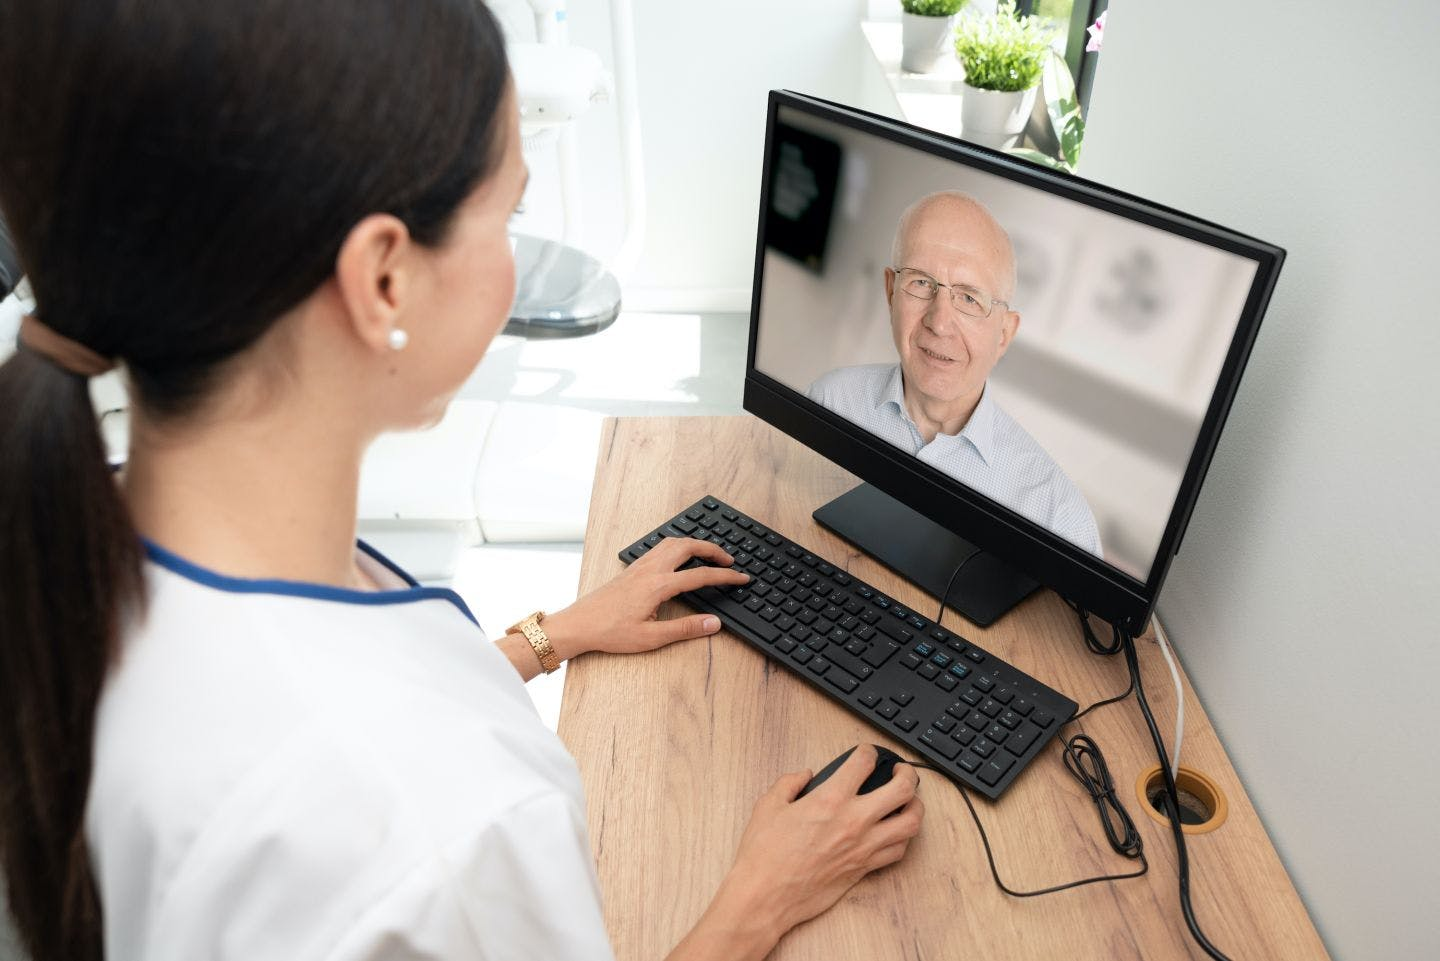 Telehealth session over laptop